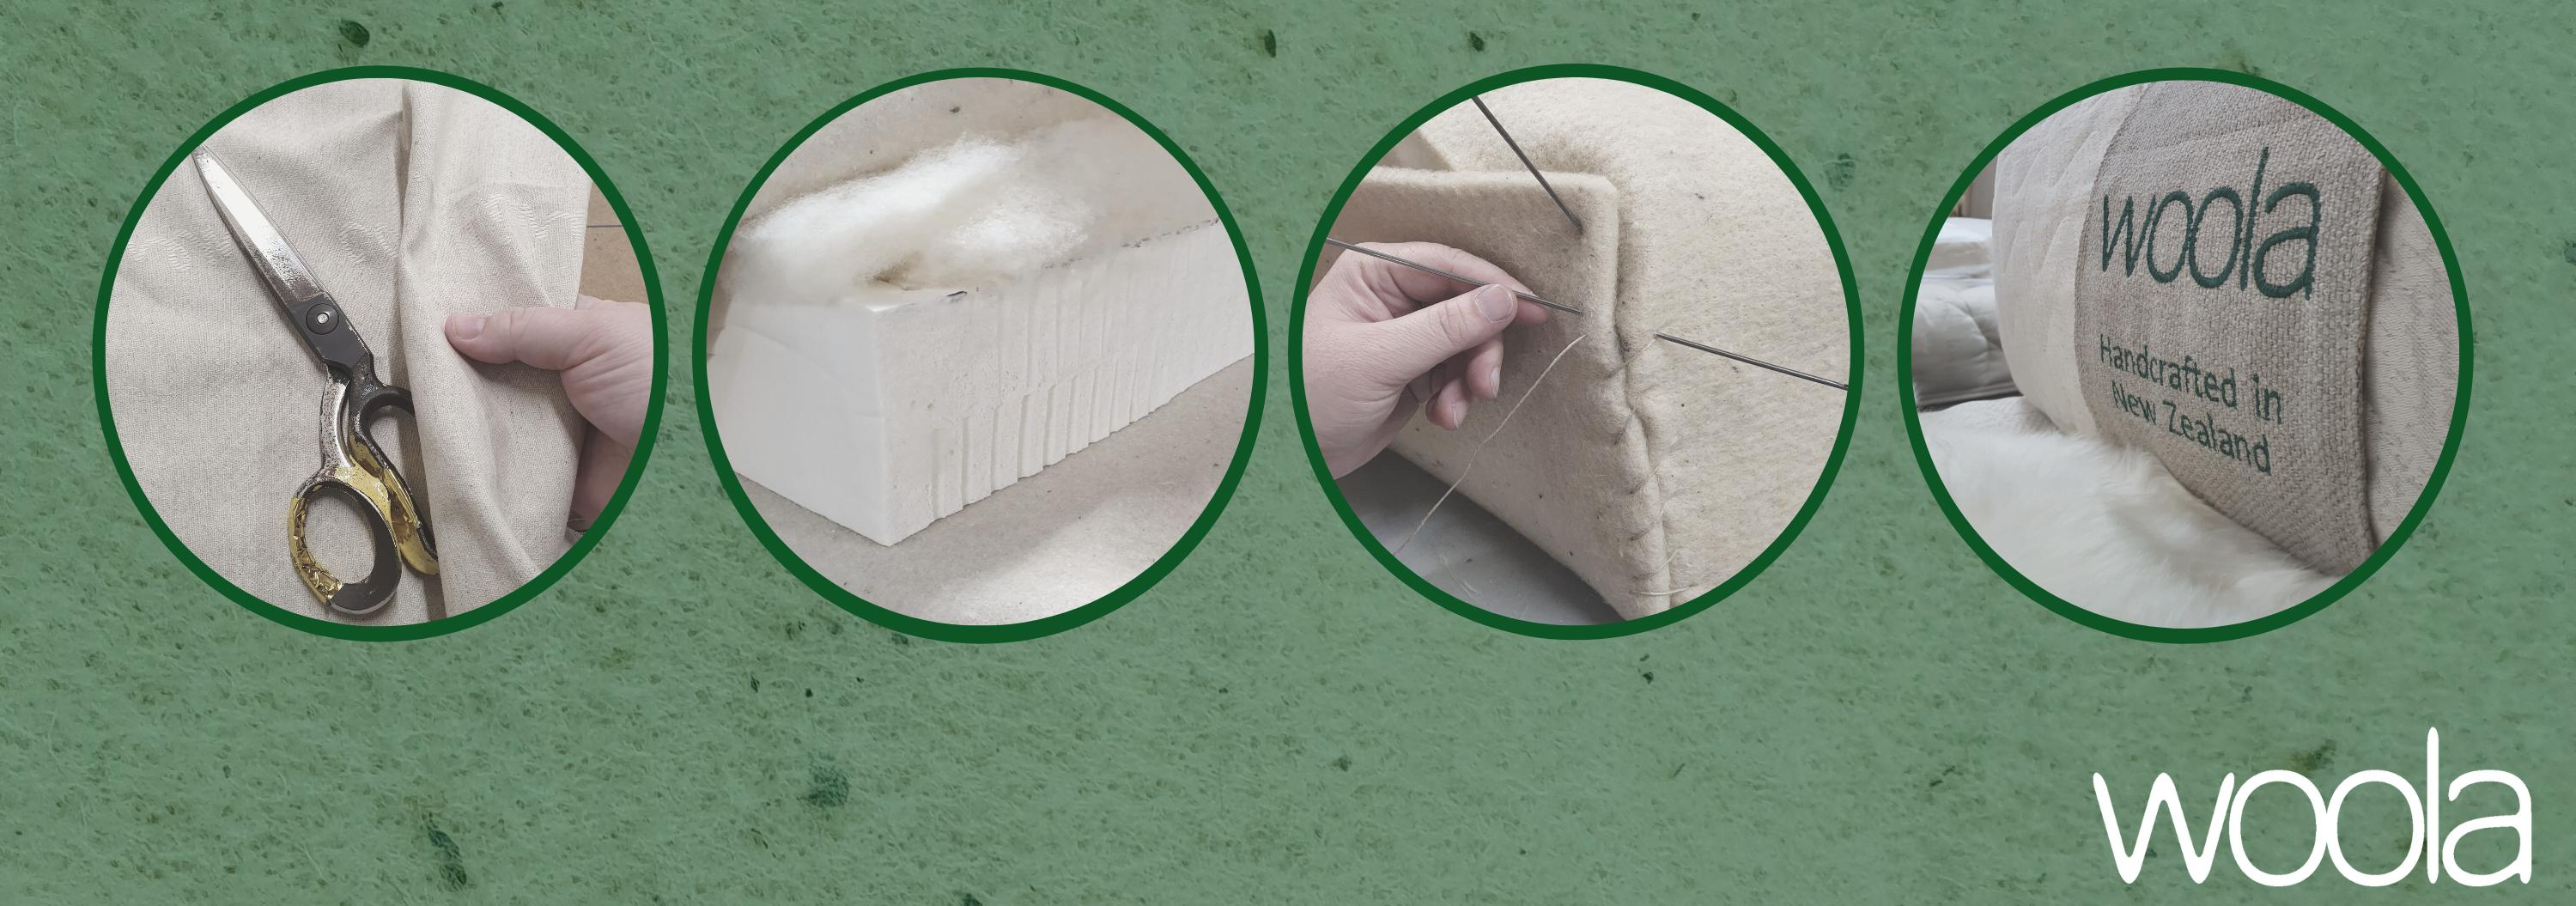 Natural Latex Foam Mattress - Woola